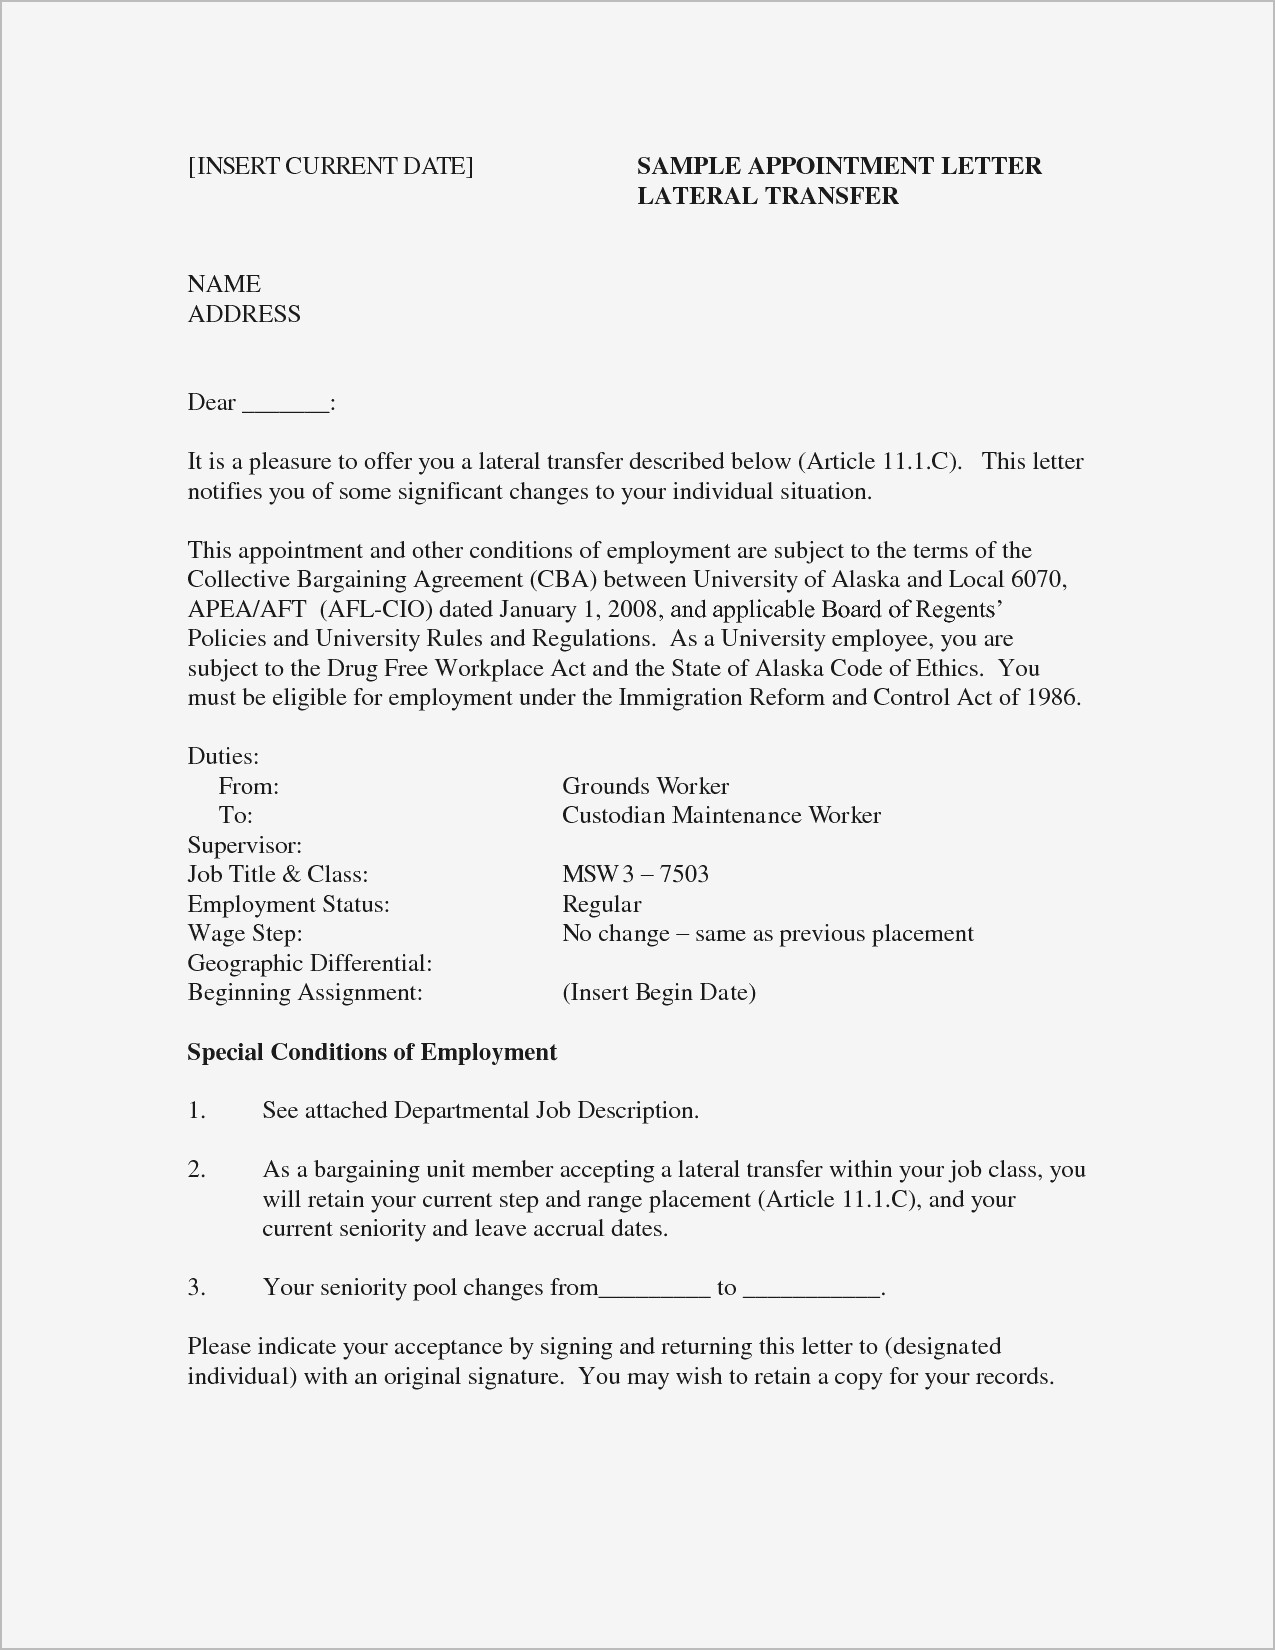 Letter of intent to sell business template examples letter templates letter of intent to sell business template letter intent template word samples cheaphphosting Image collections